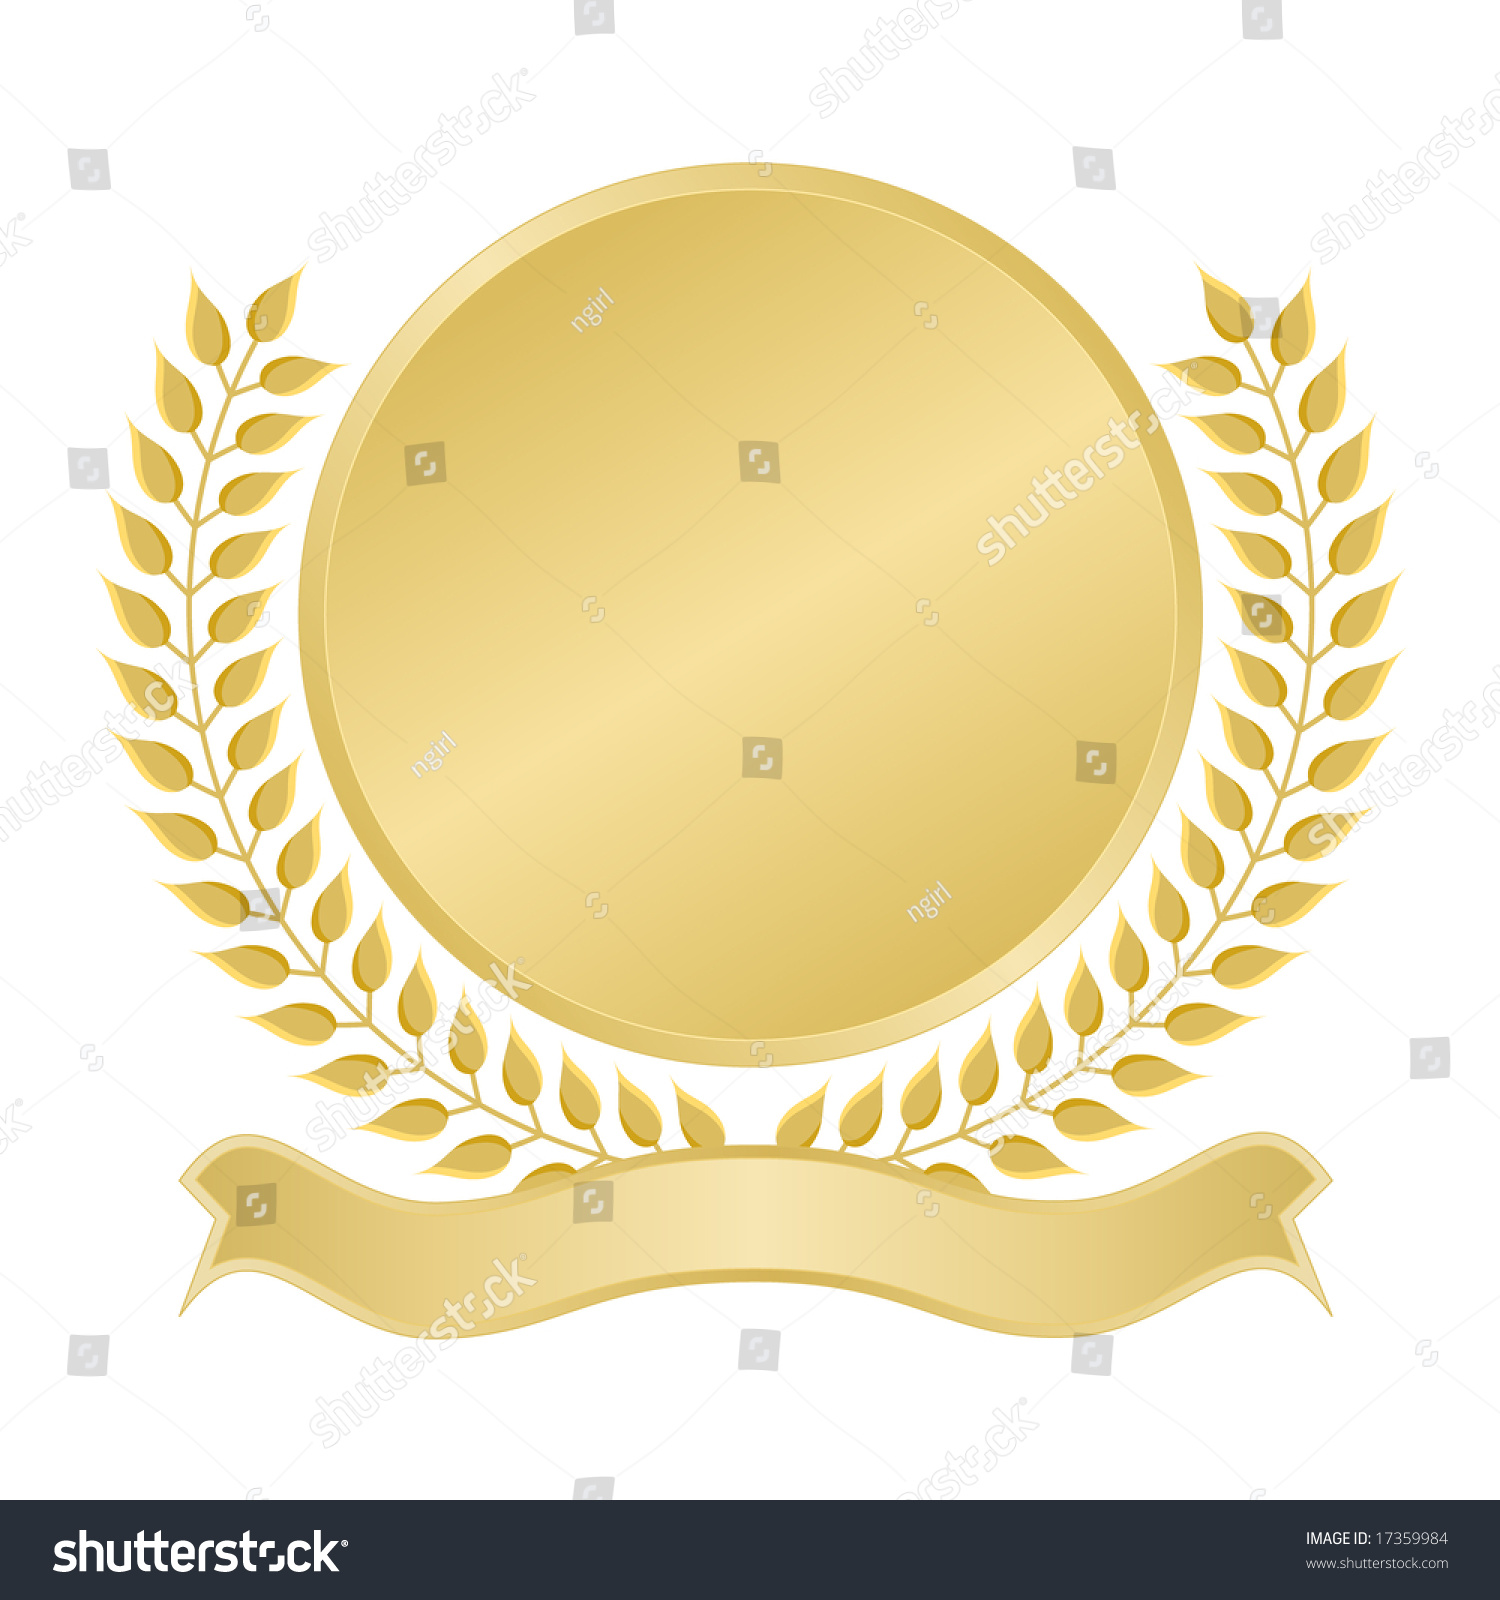 Blank Gold Seal With Ribbon Banner For Award, Quality